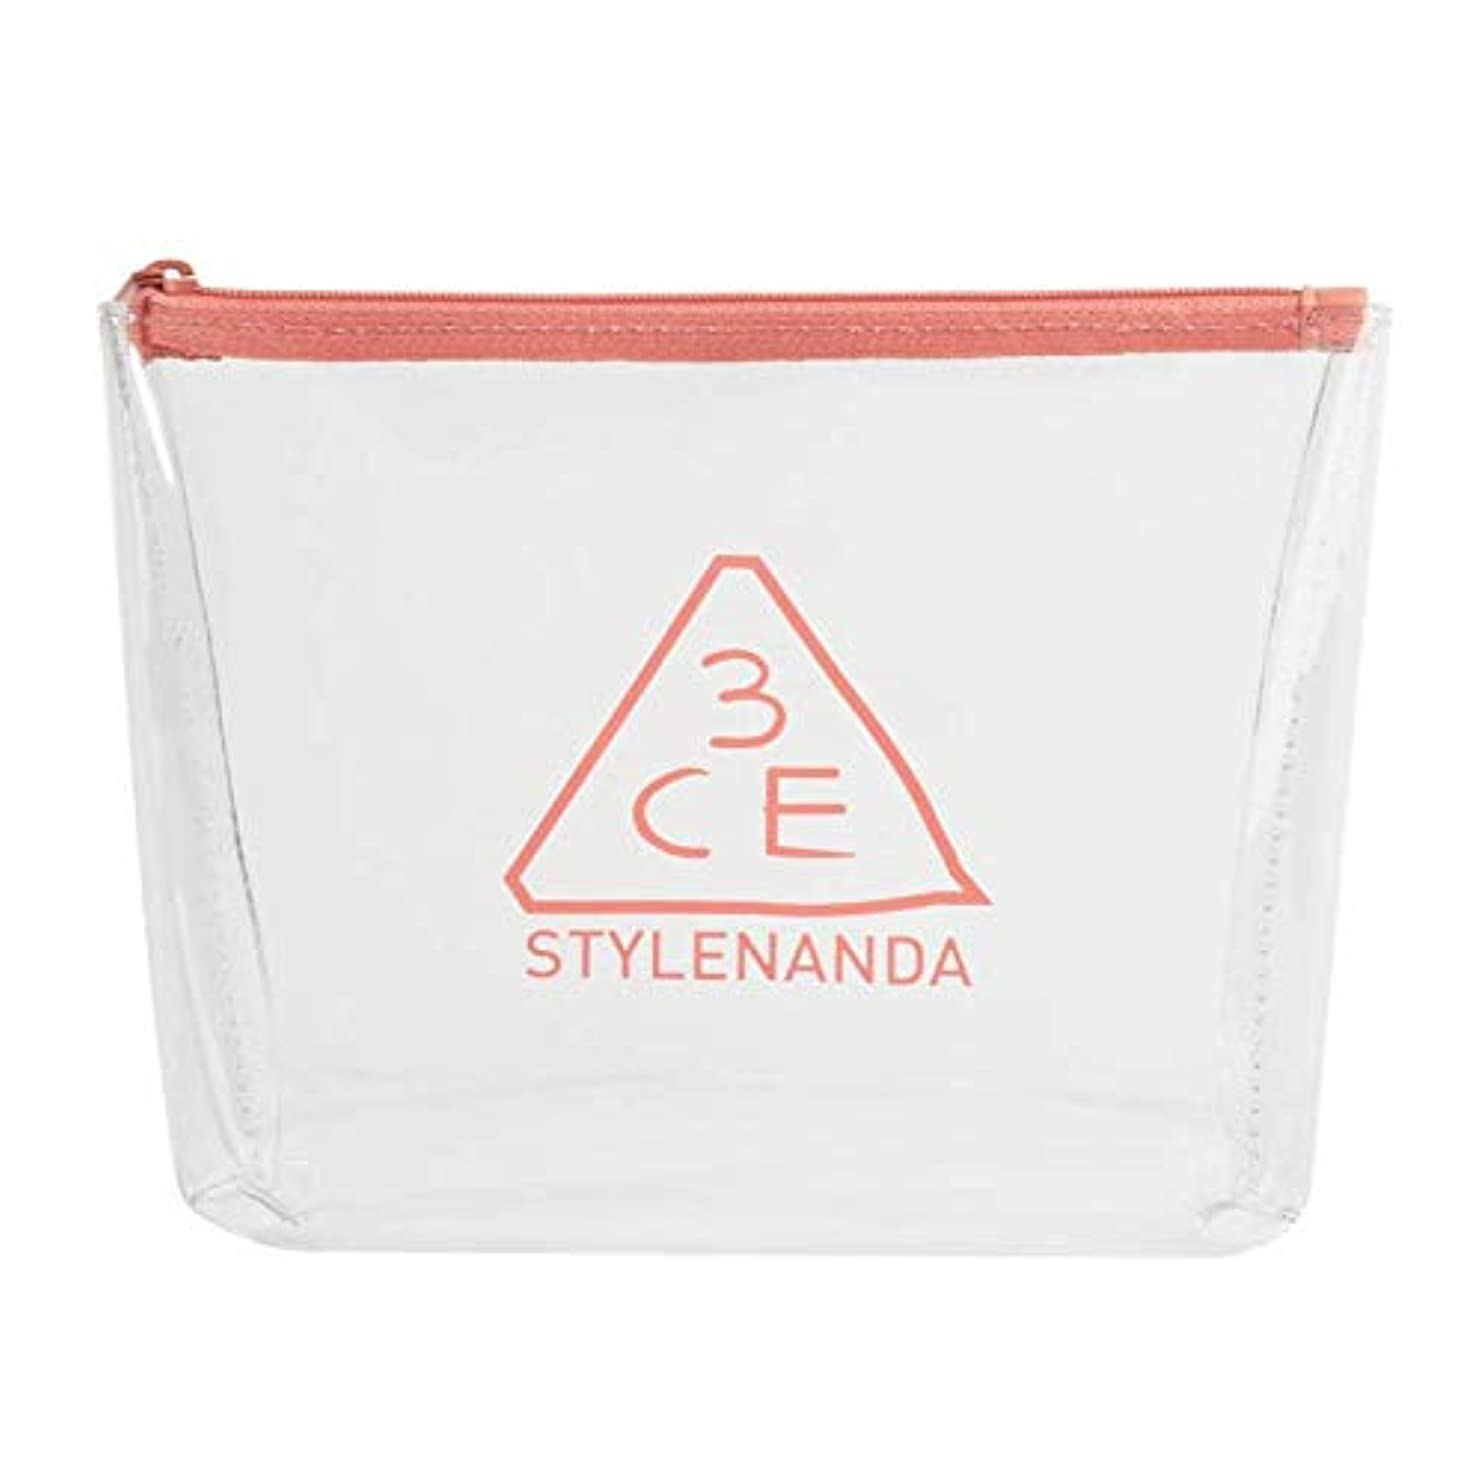 3CE クリアトラペーズポーチ CLEAR TRAPEZE POUCH #PINK BEIGE [並行輸入品]